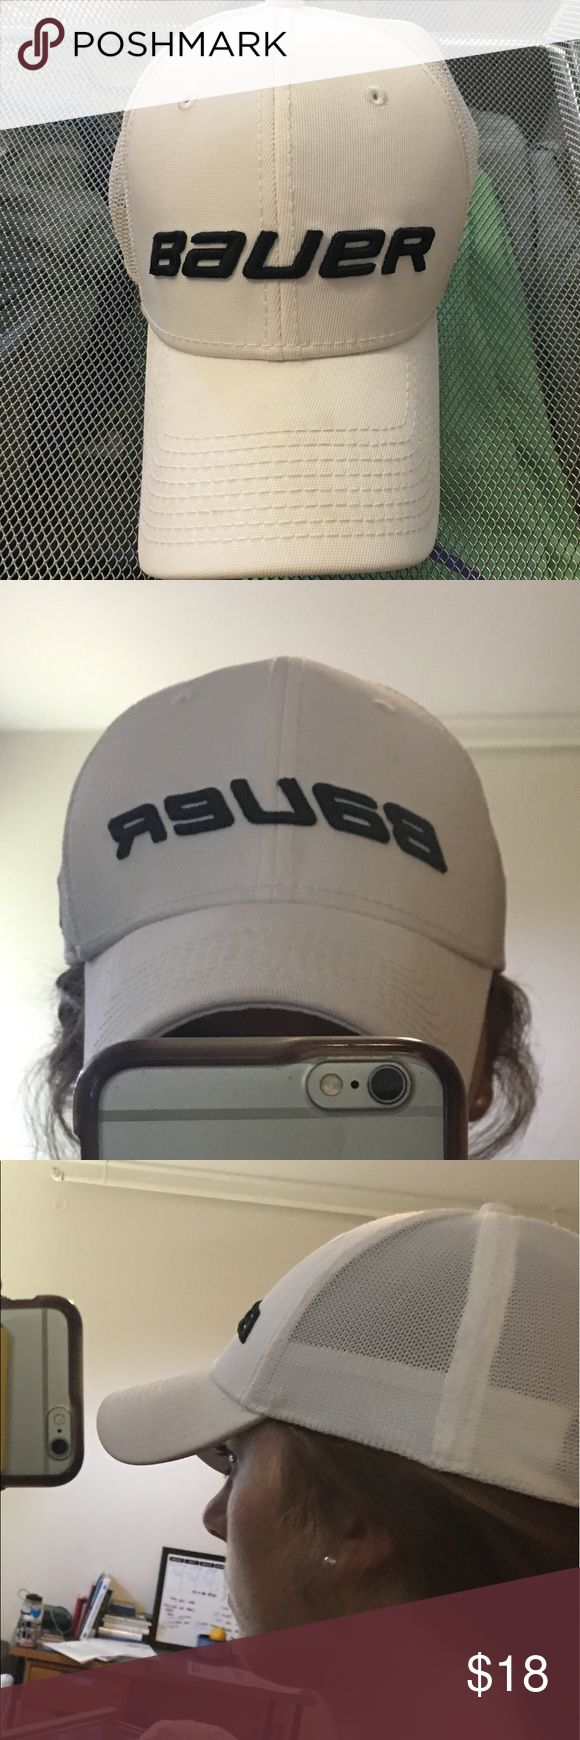 White Bauer Hockey hat Like new! Hardly worn--maybe twice. Downsizing my closet. No stains. Smoke free. No pilling. Not stretched out. Size S/M. bauer Accessories Hats